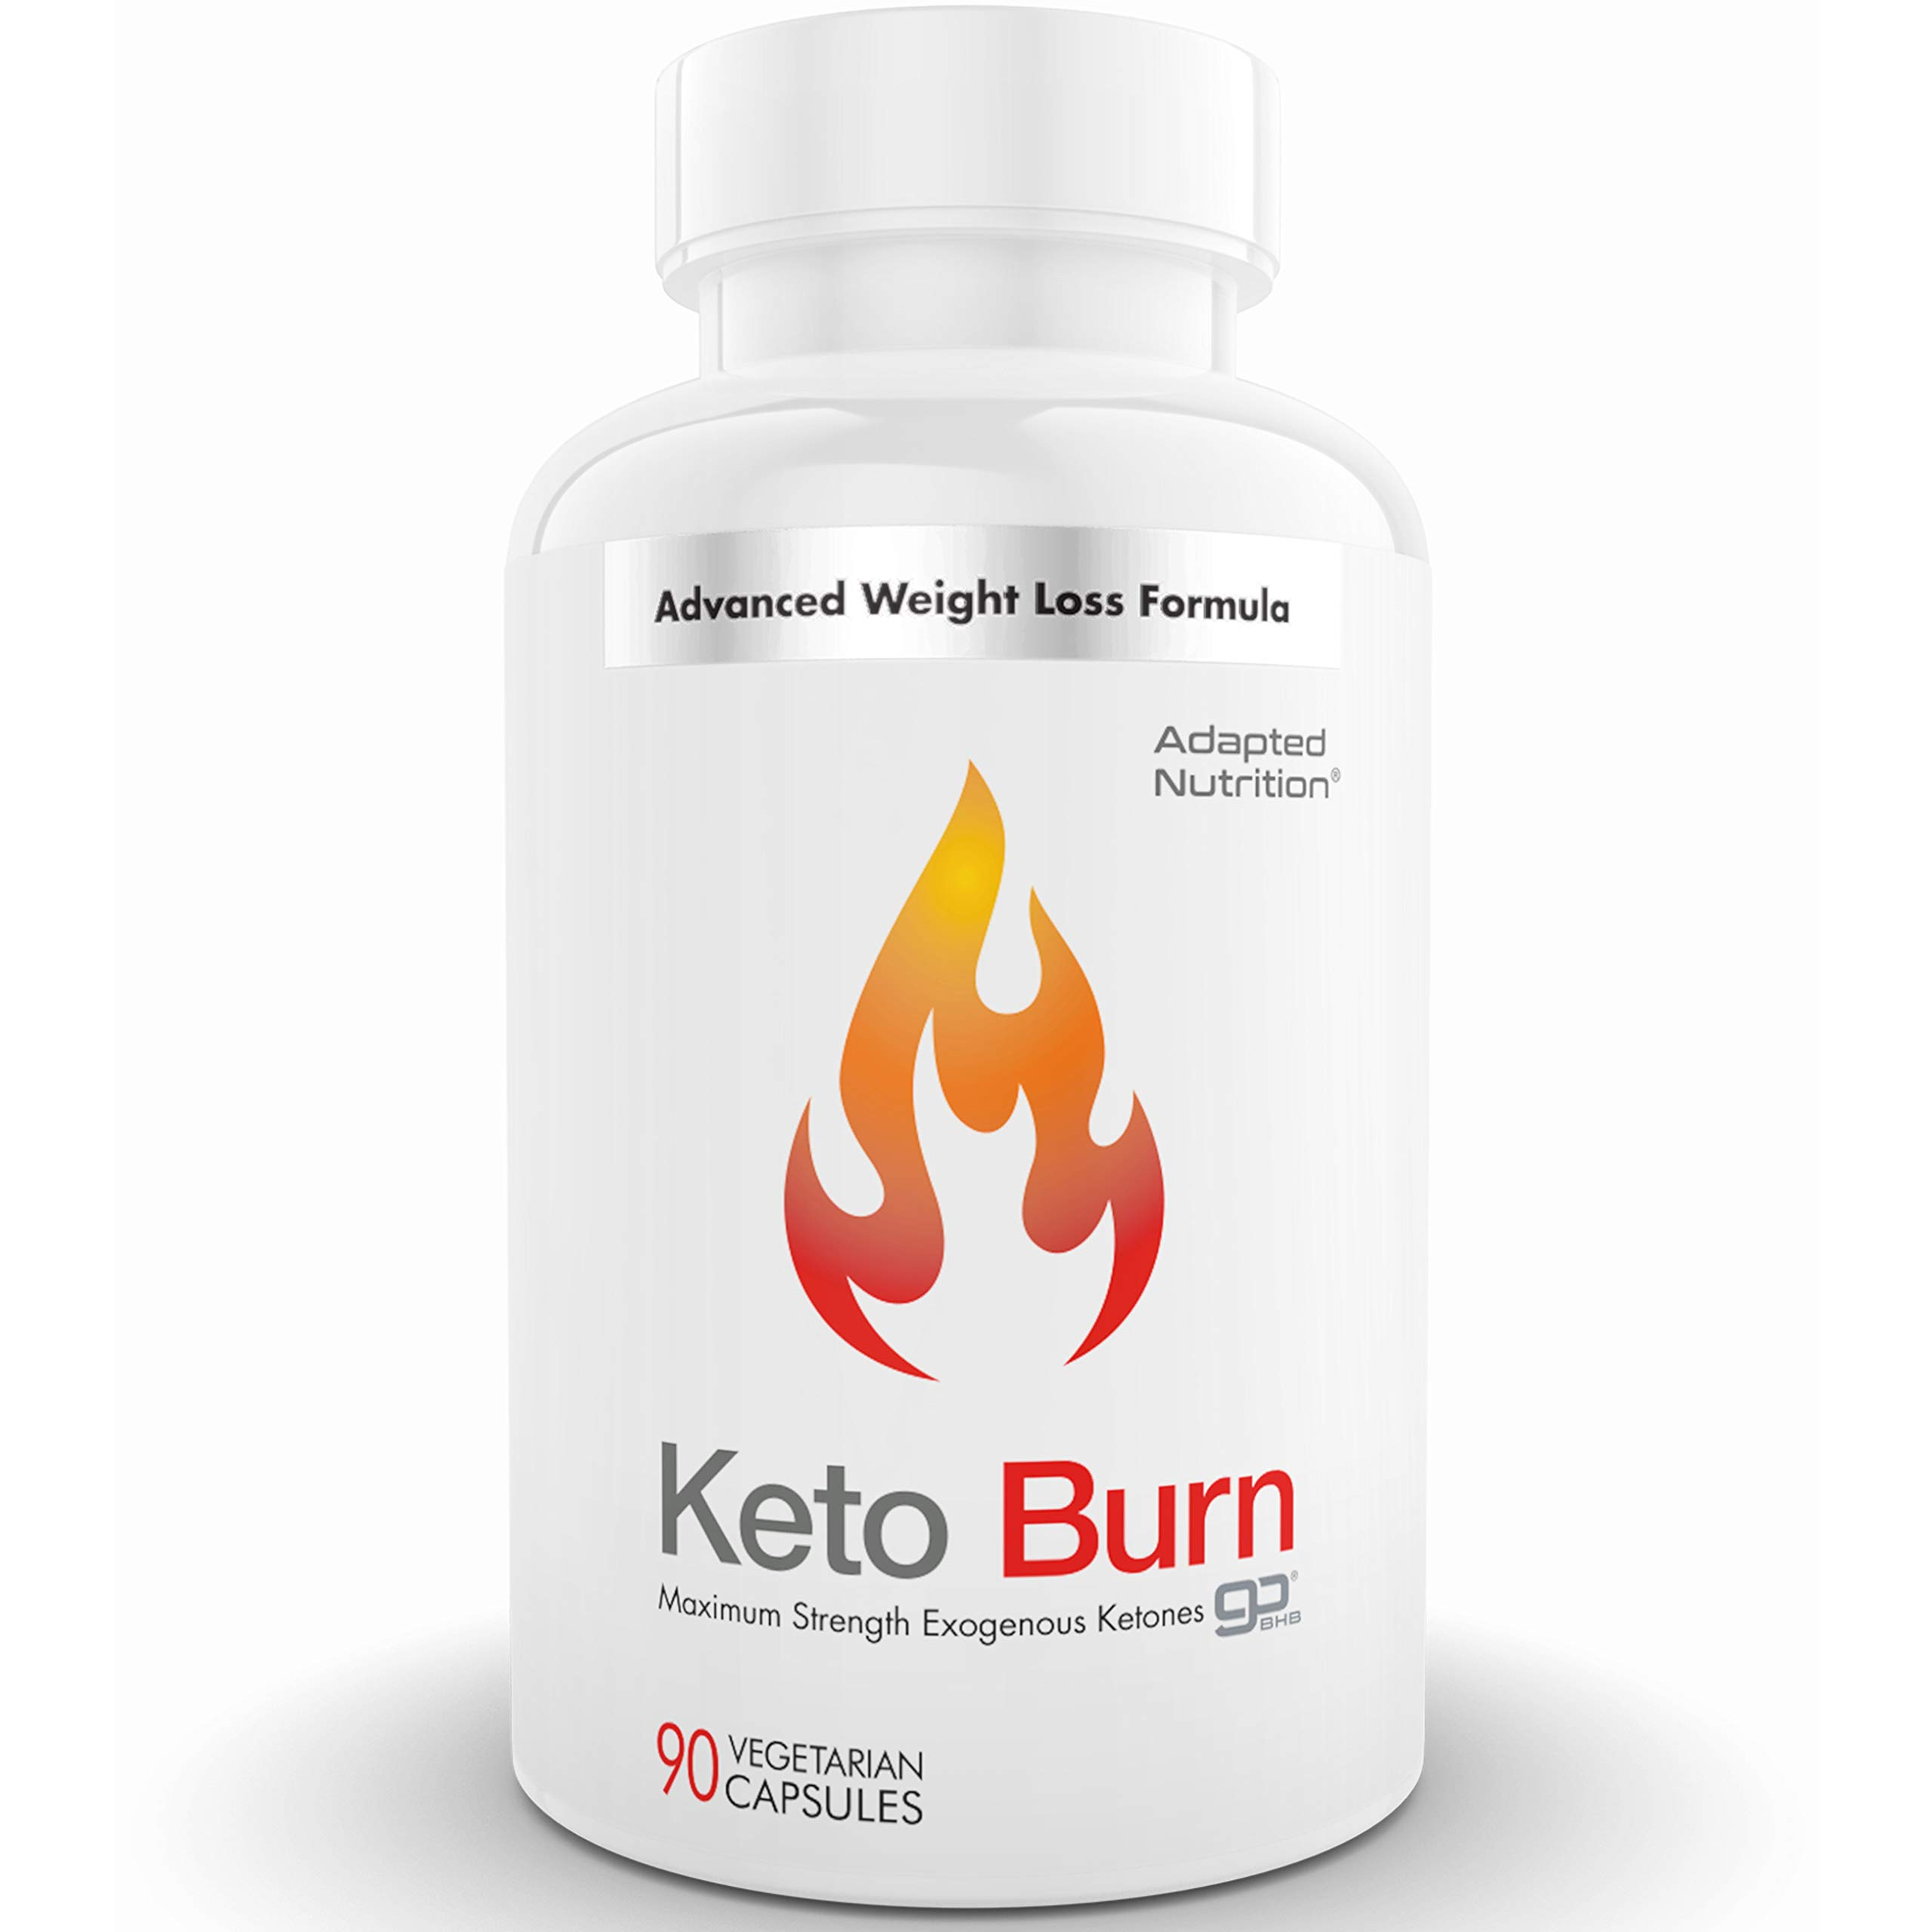 Keto Burn Exogenous Ketone Capsules with 2200mg BHB | Perfect for Ketogenic Diet & Weight Management | Boost Energy, Focus and Ketosis Beta-Hydroxybutyrate Salt Pills by Adapted Nutrition